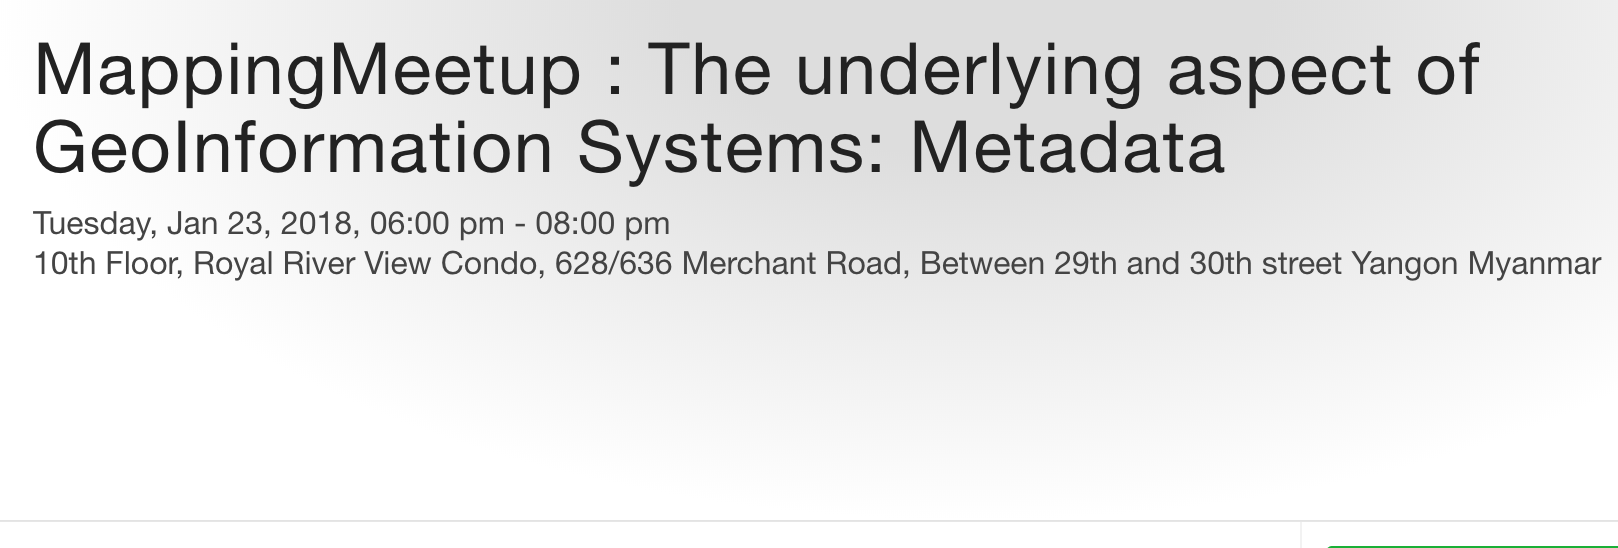 MappingMeetup : The underlying aspect of GeoInformation Systems: Metadata